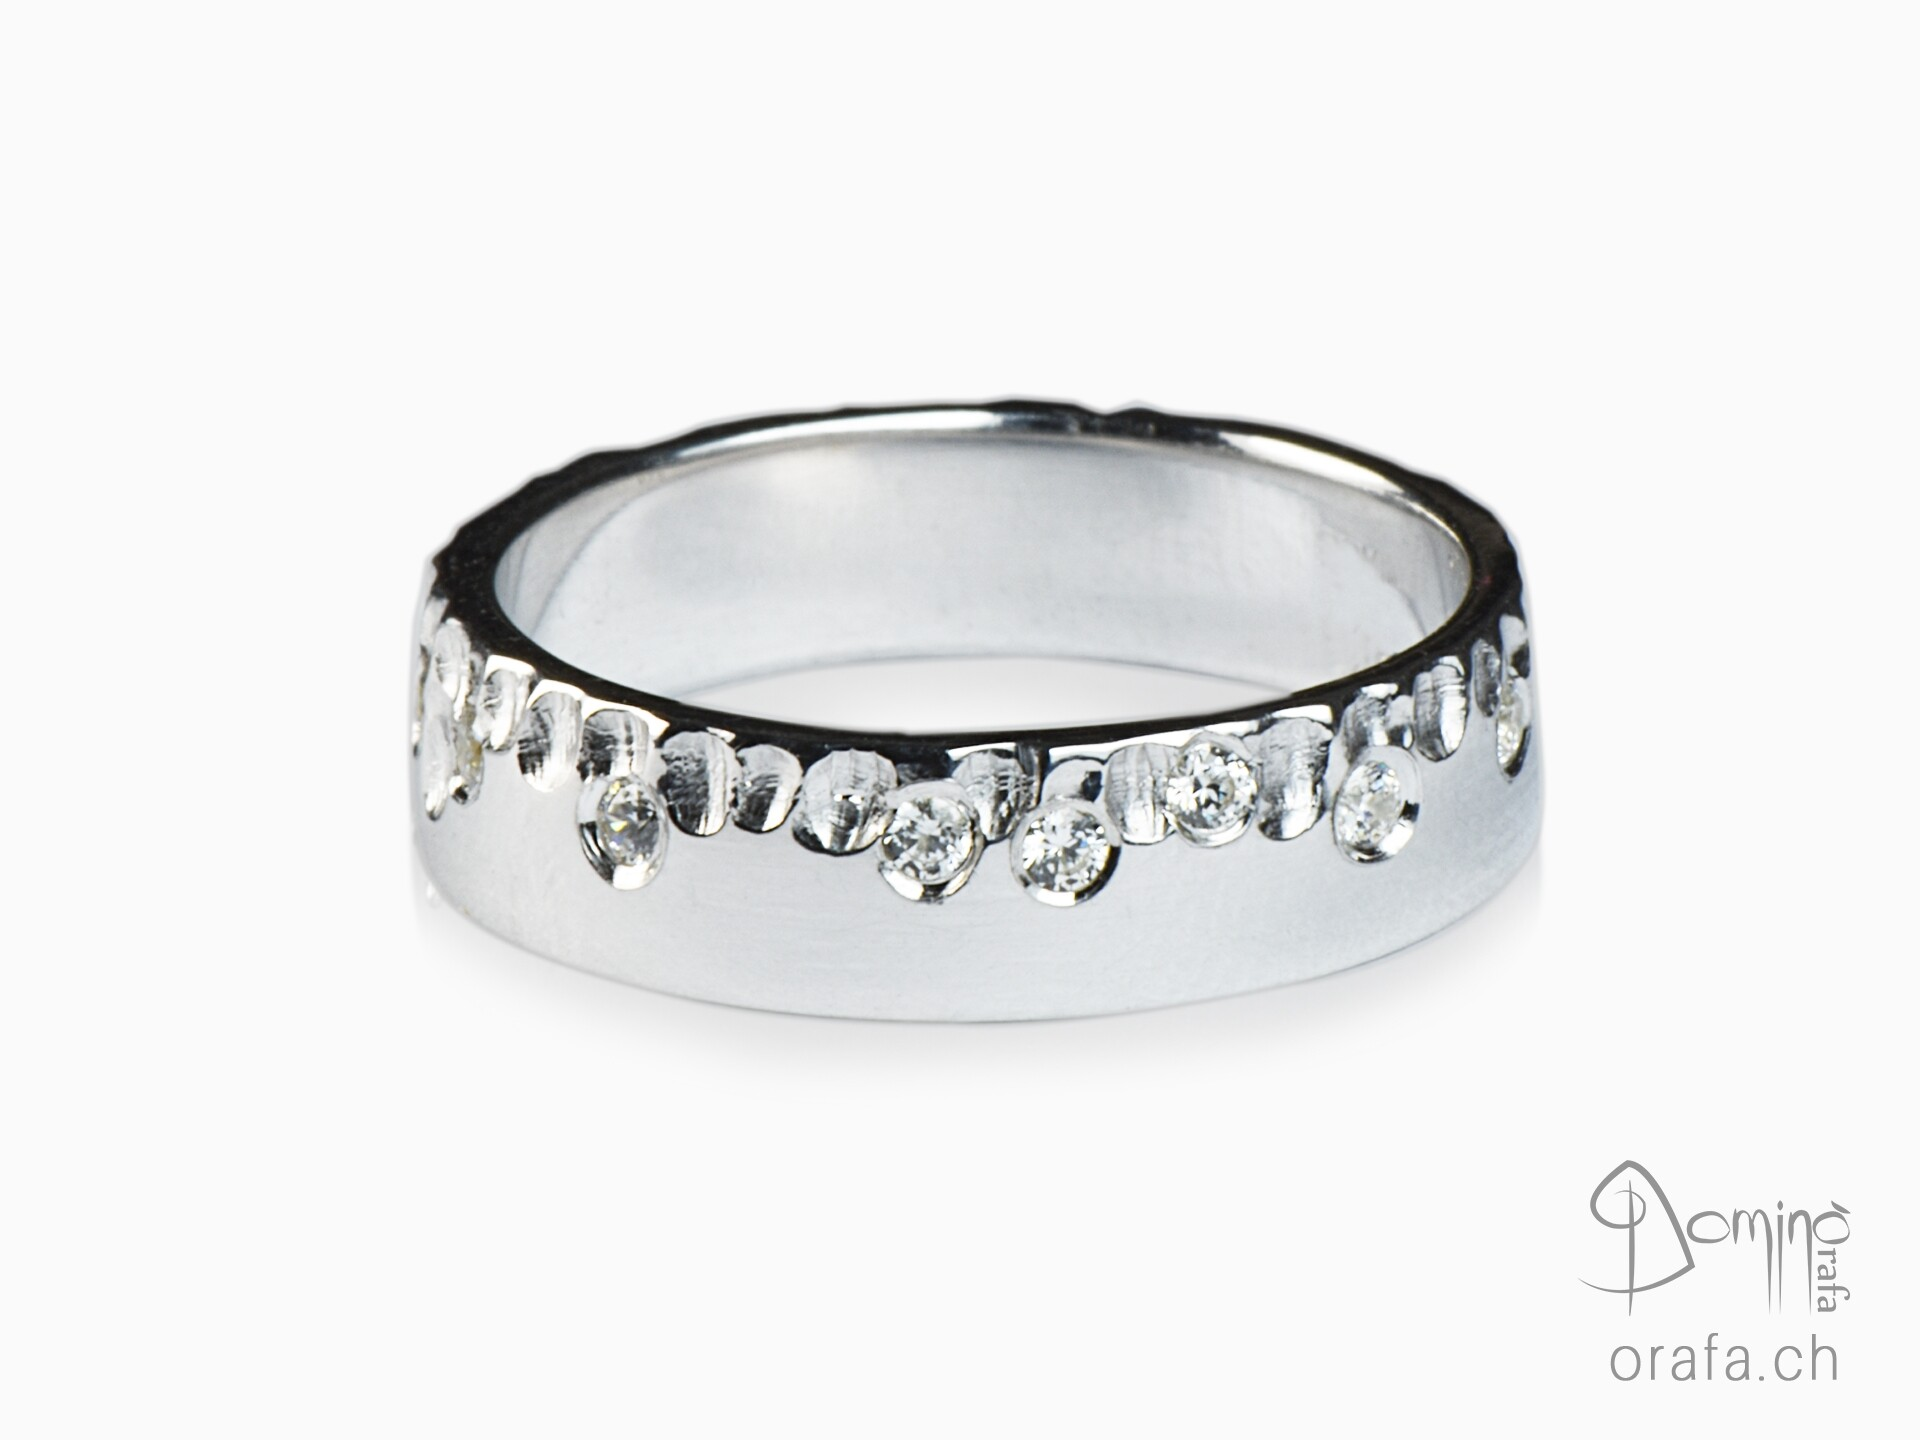 Gocce/polished diamonds ring